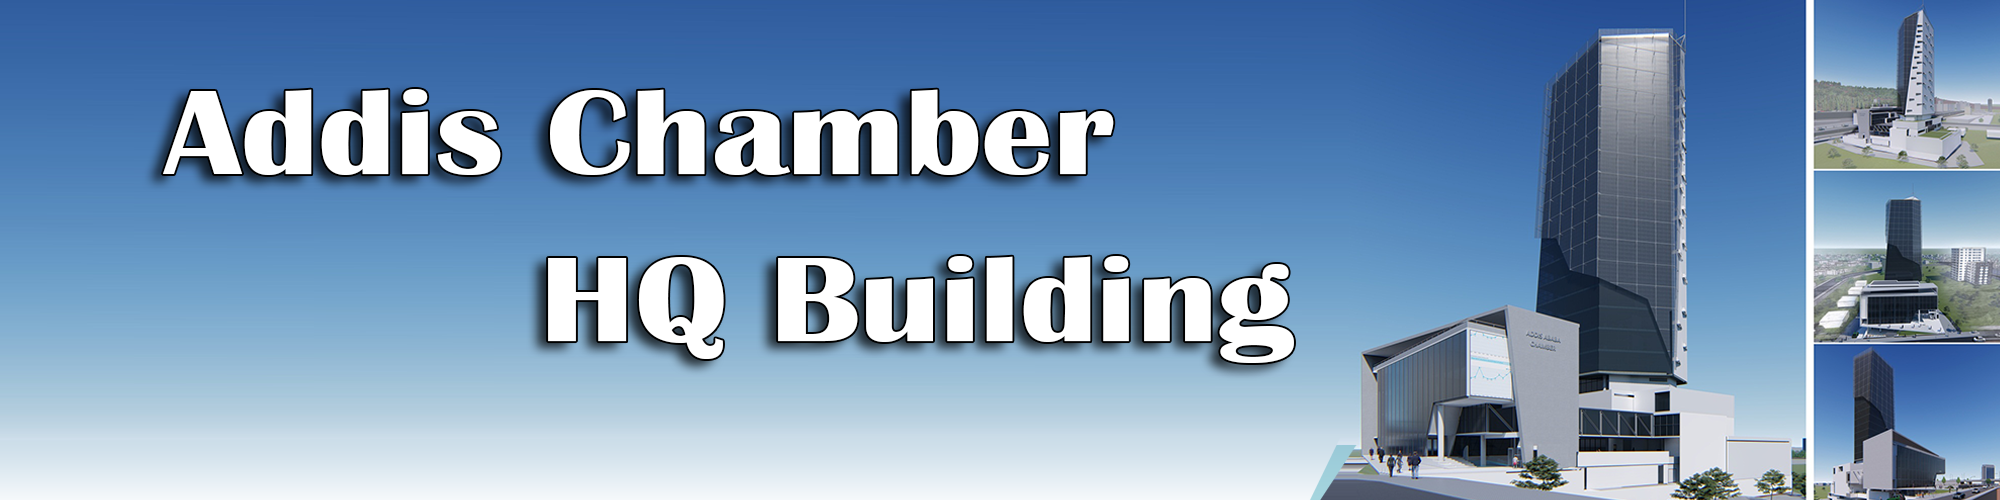 Addis-Chmaber-New-Building-